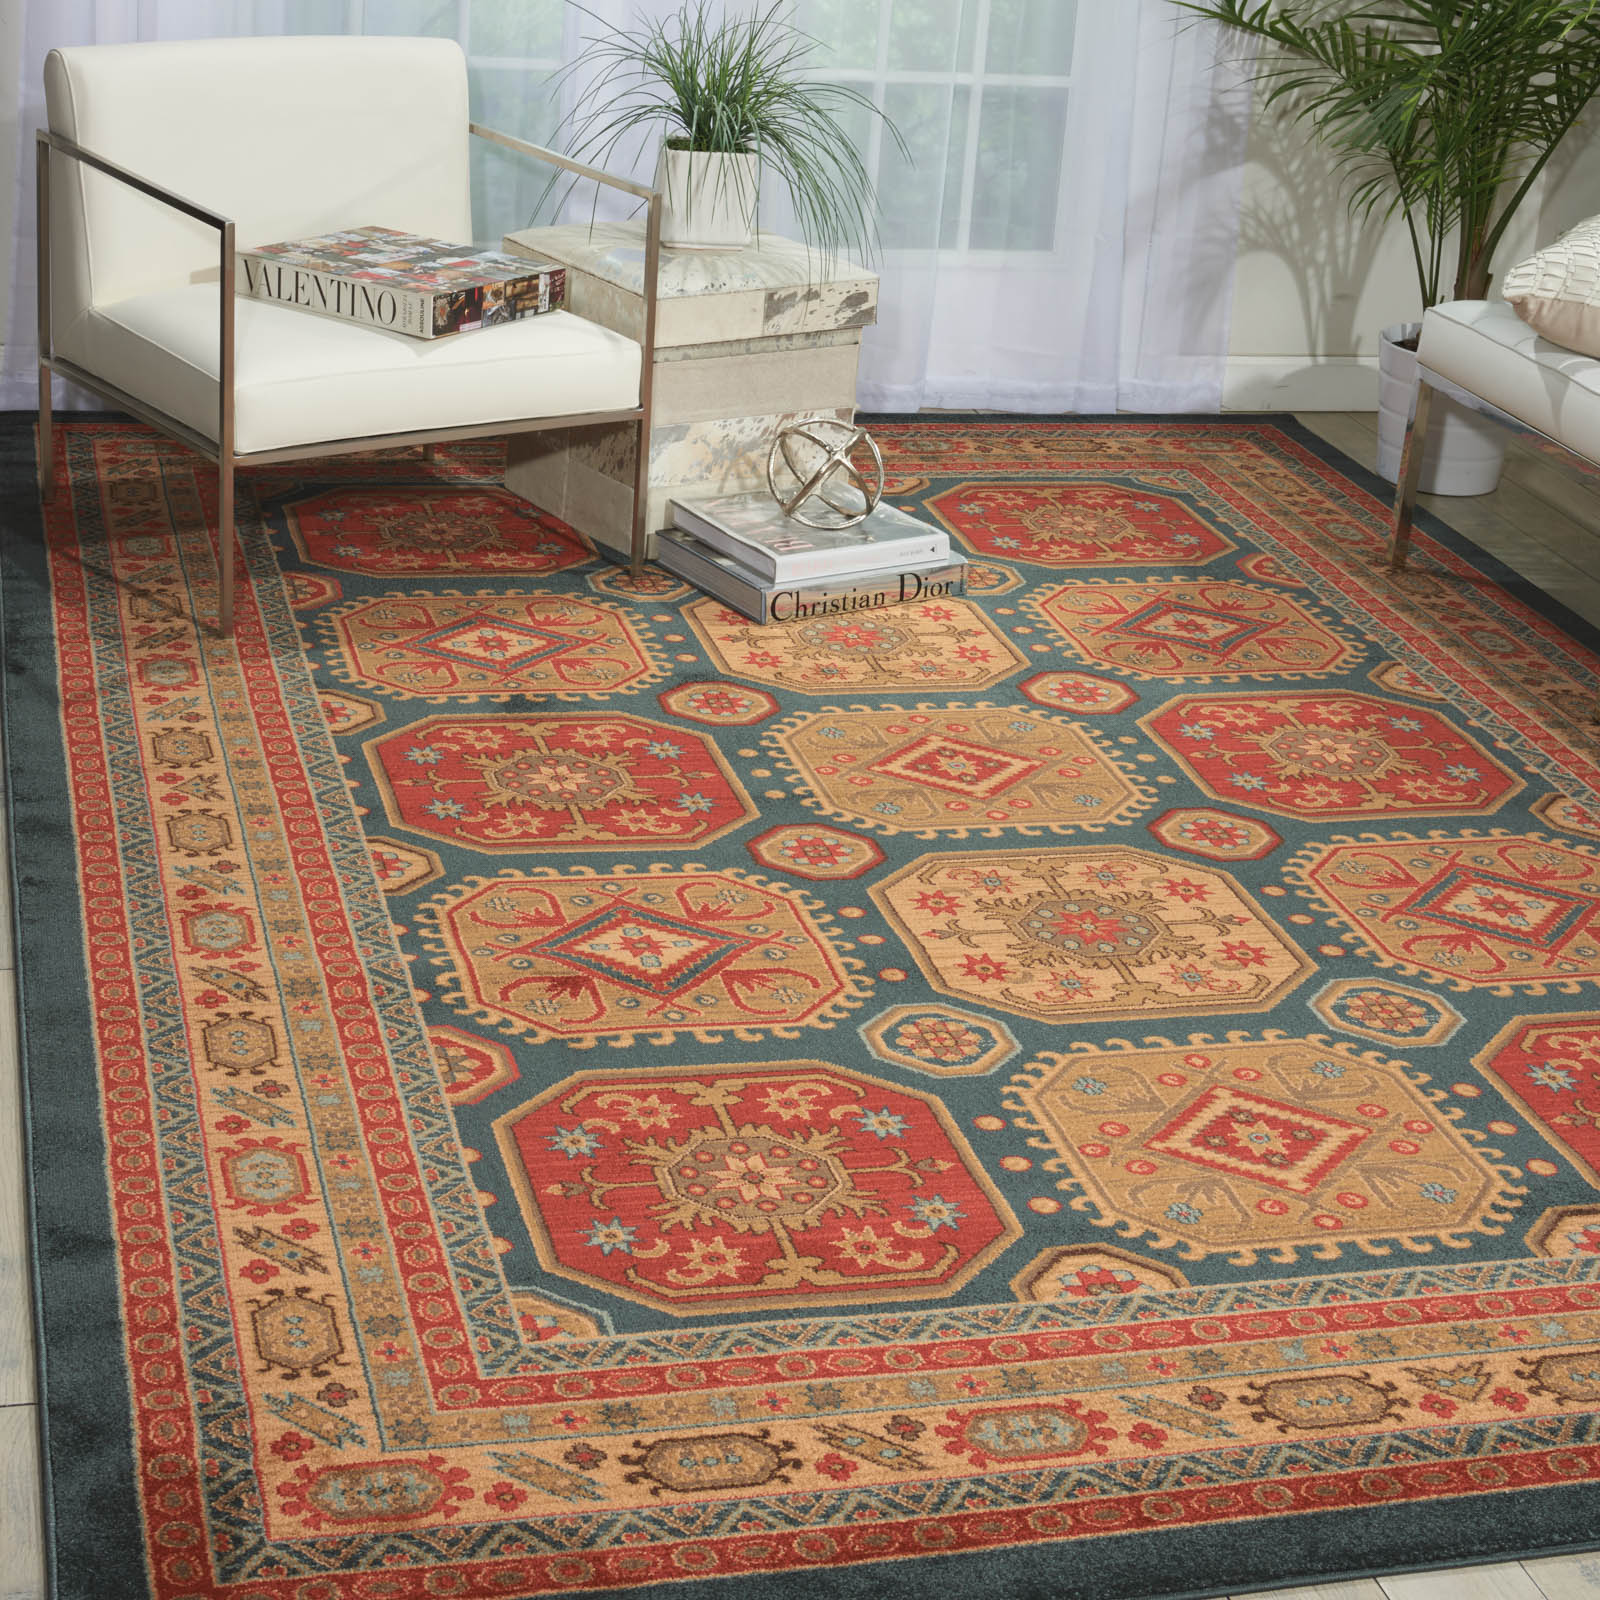 Maymana Rug MYN13 in Midnight